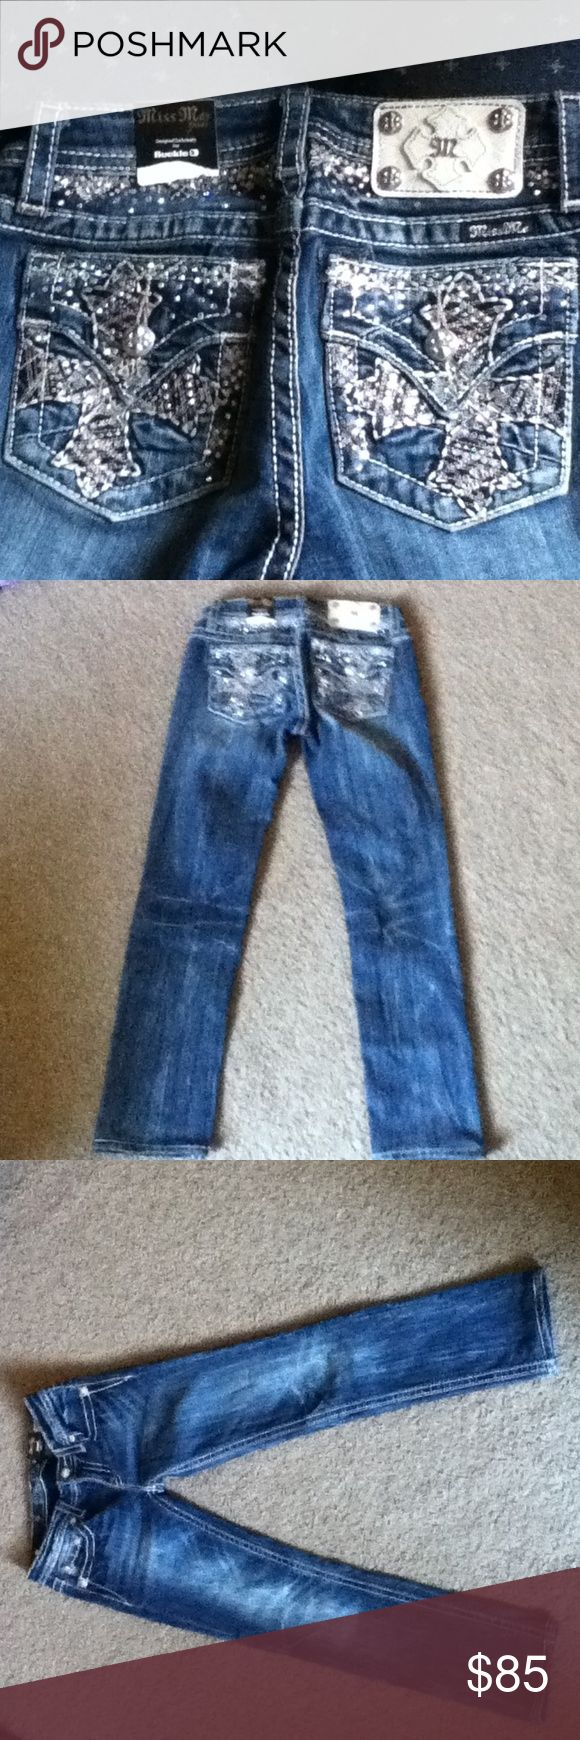 New Little girls Miss me jeans New super cute little girls size 14 skinny jeans with tags attached Miss Me Jeans